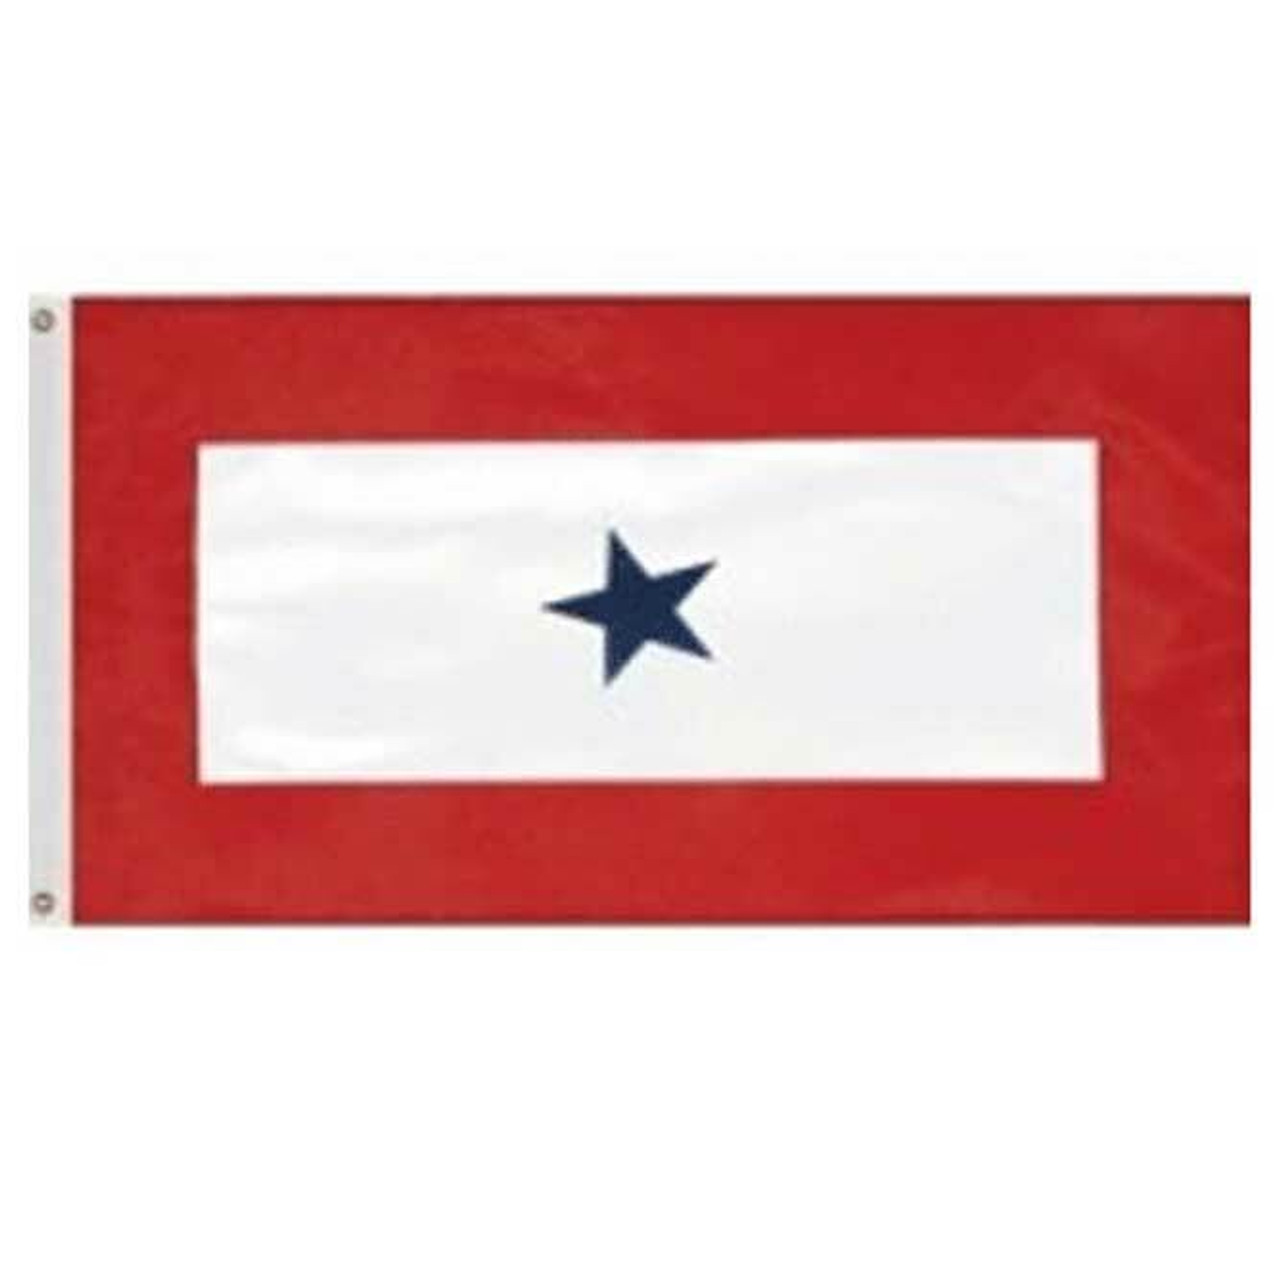 In Service 1 Star Flag